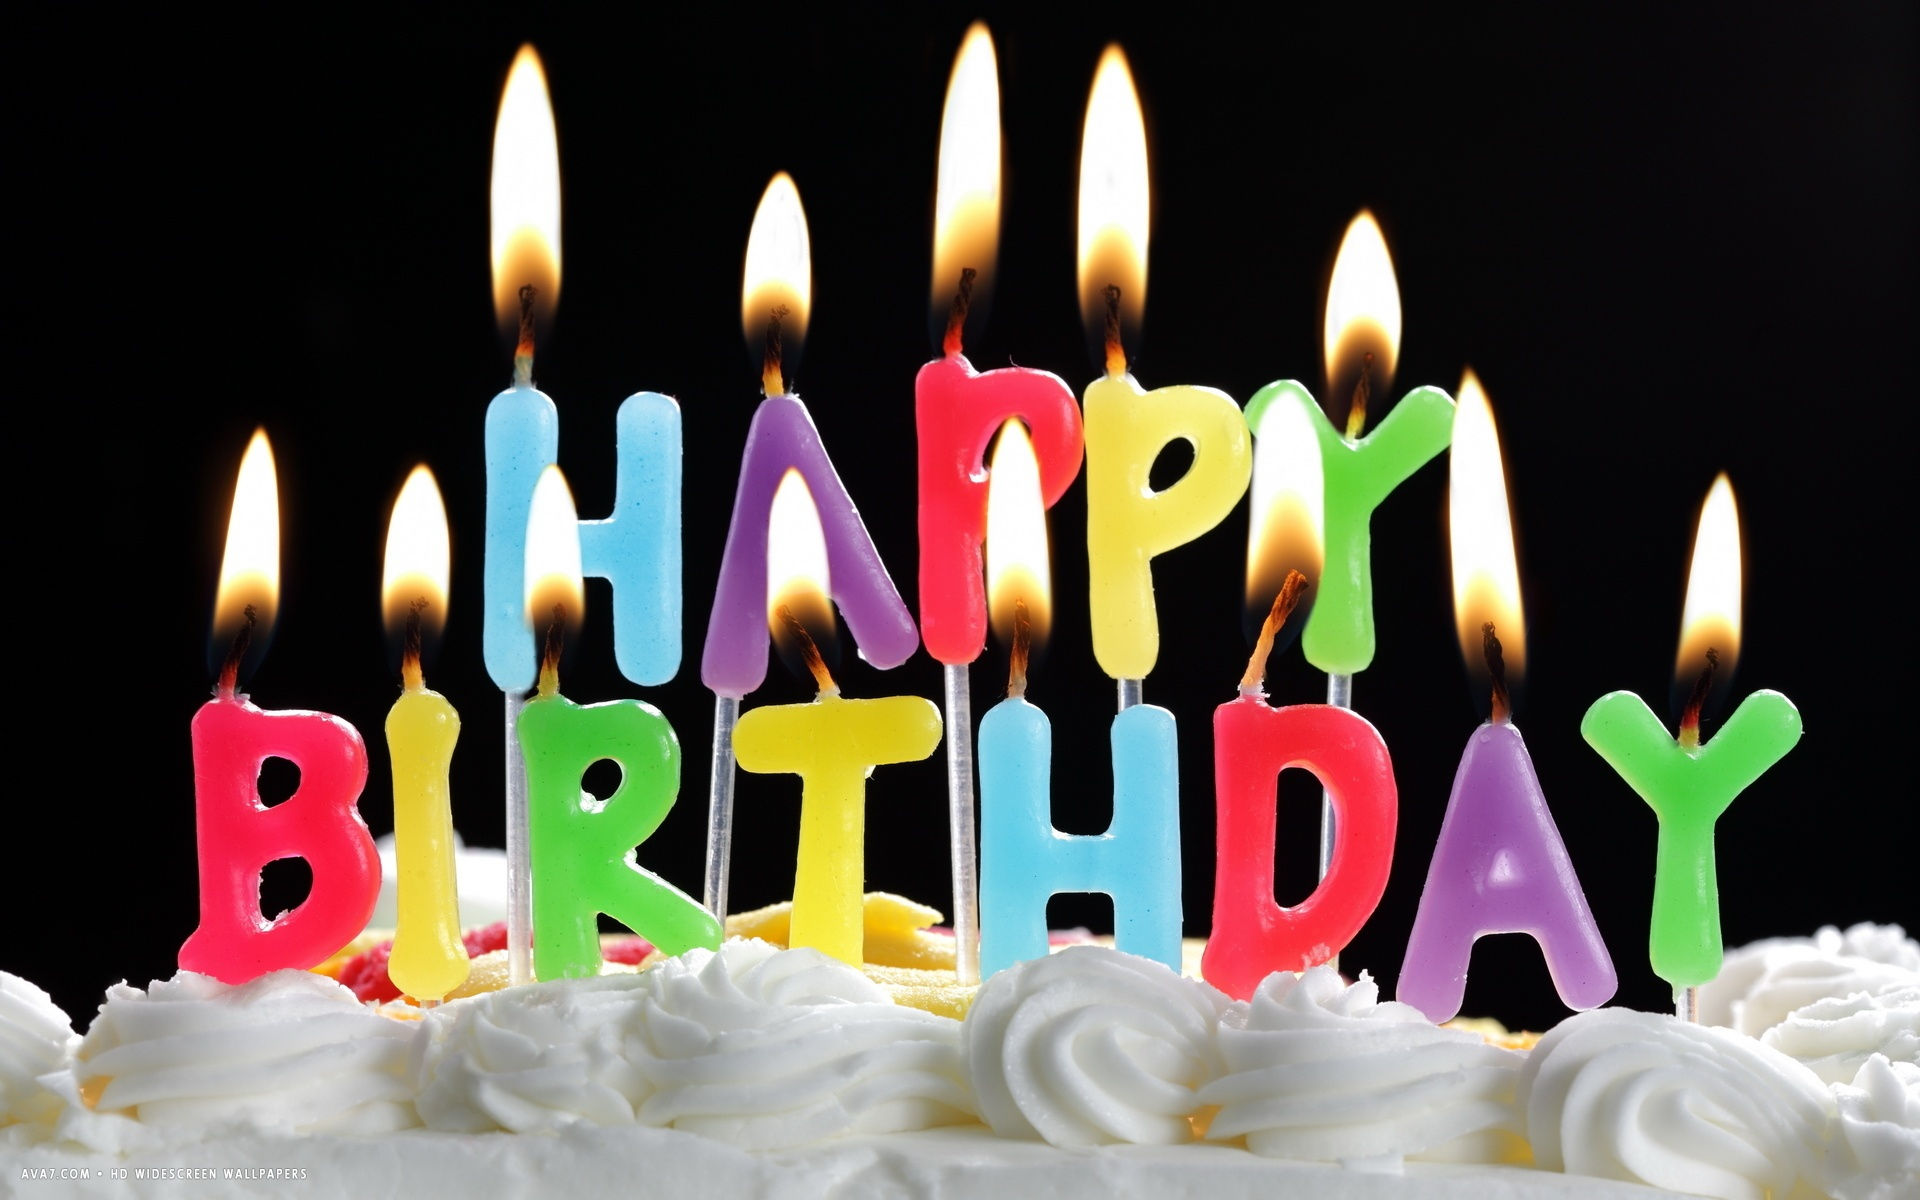 Happy Birthday Colorful Letter Candles White Cake Hd Widescreen